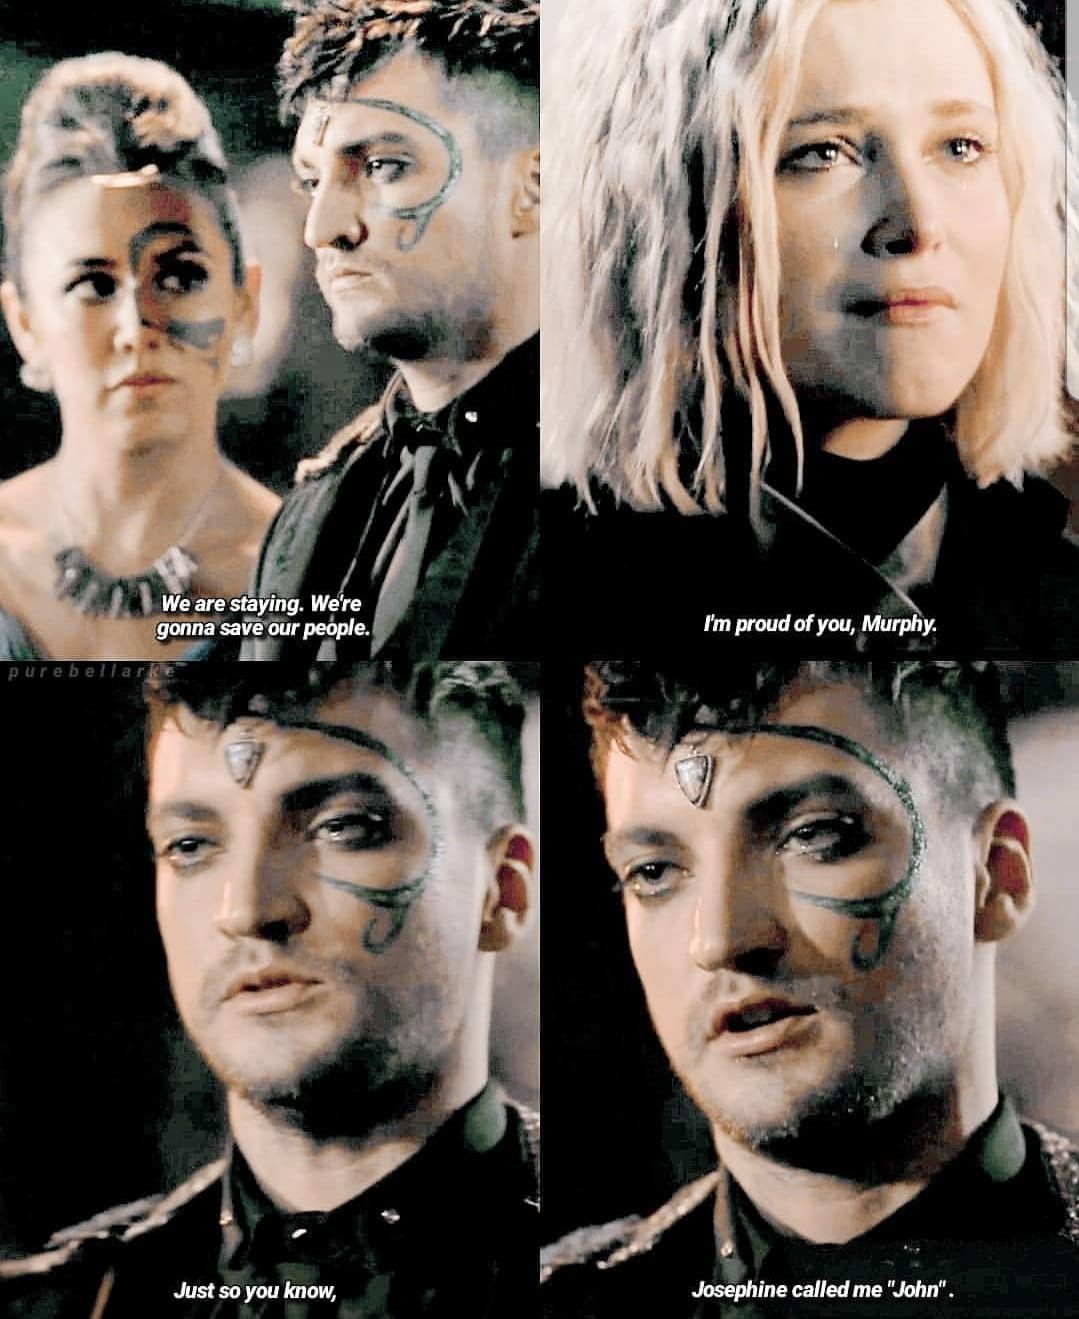 Pin By Kait Gesell On Series The 100 Show Murphy The 100 The 100 Clexa